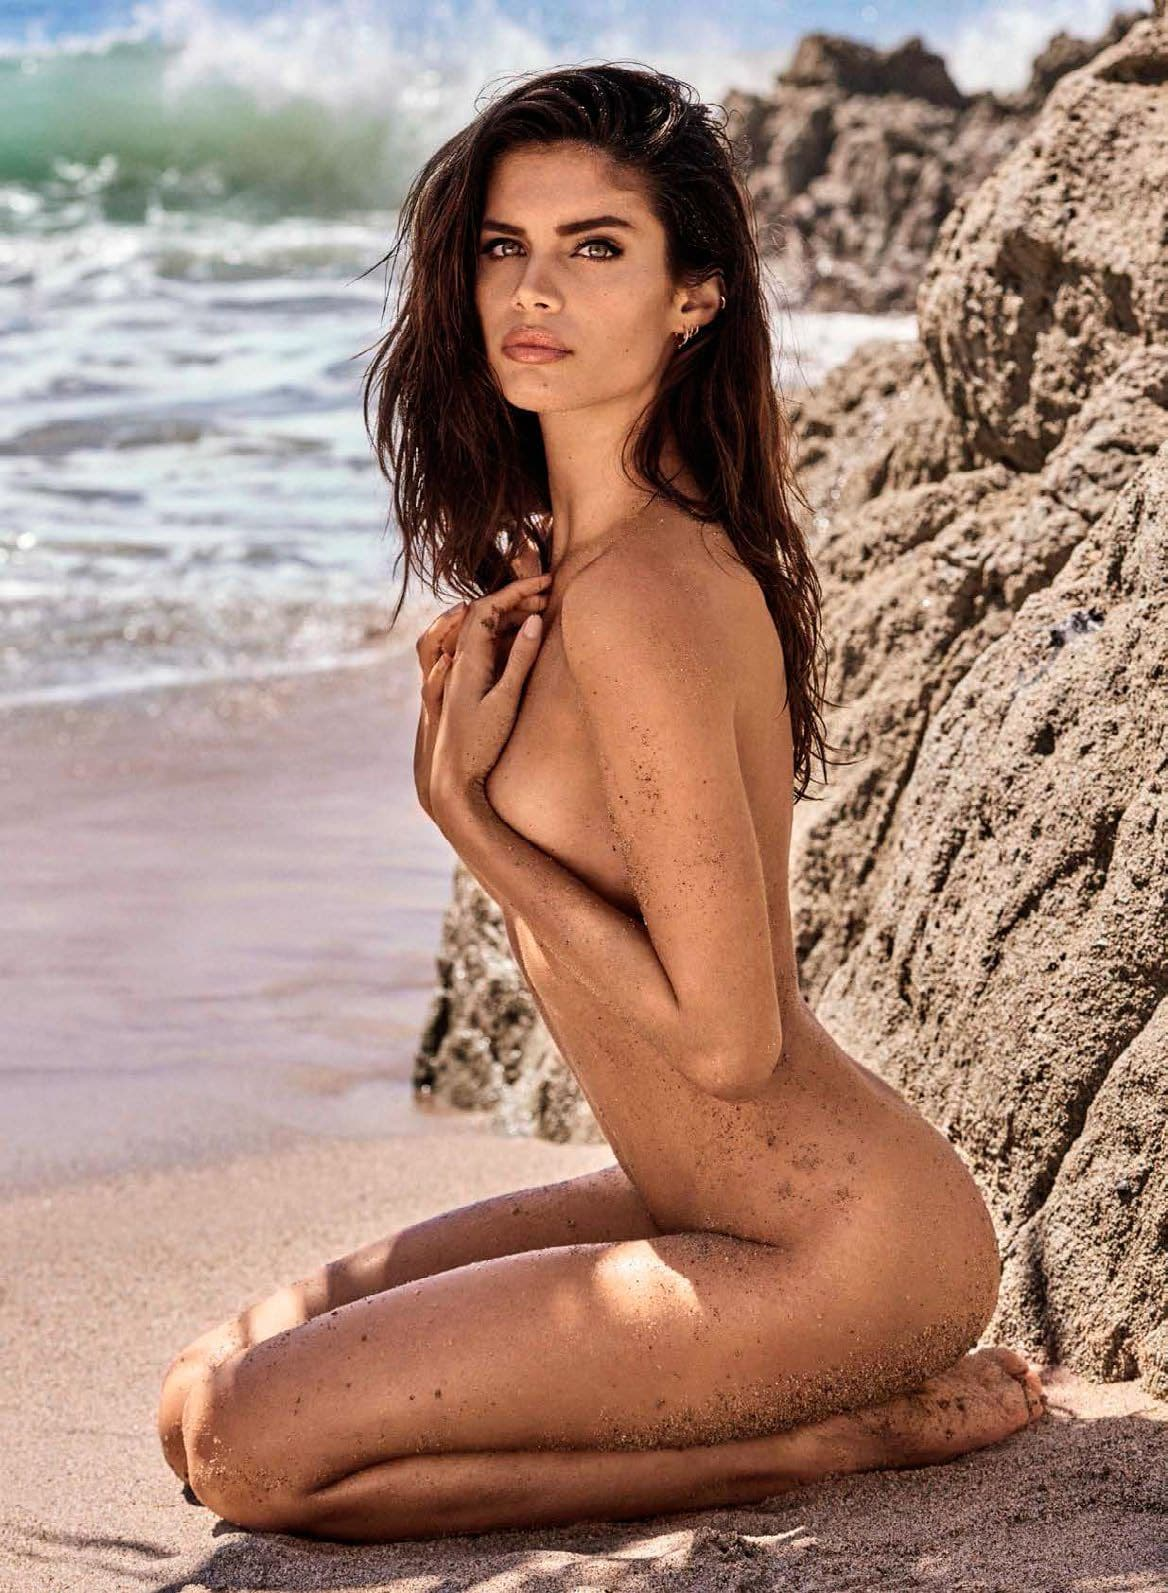 Don't forget to check out more celebrity leaks below.: celebsunmasked.com/sara-sampaio-leaked-nude-photos